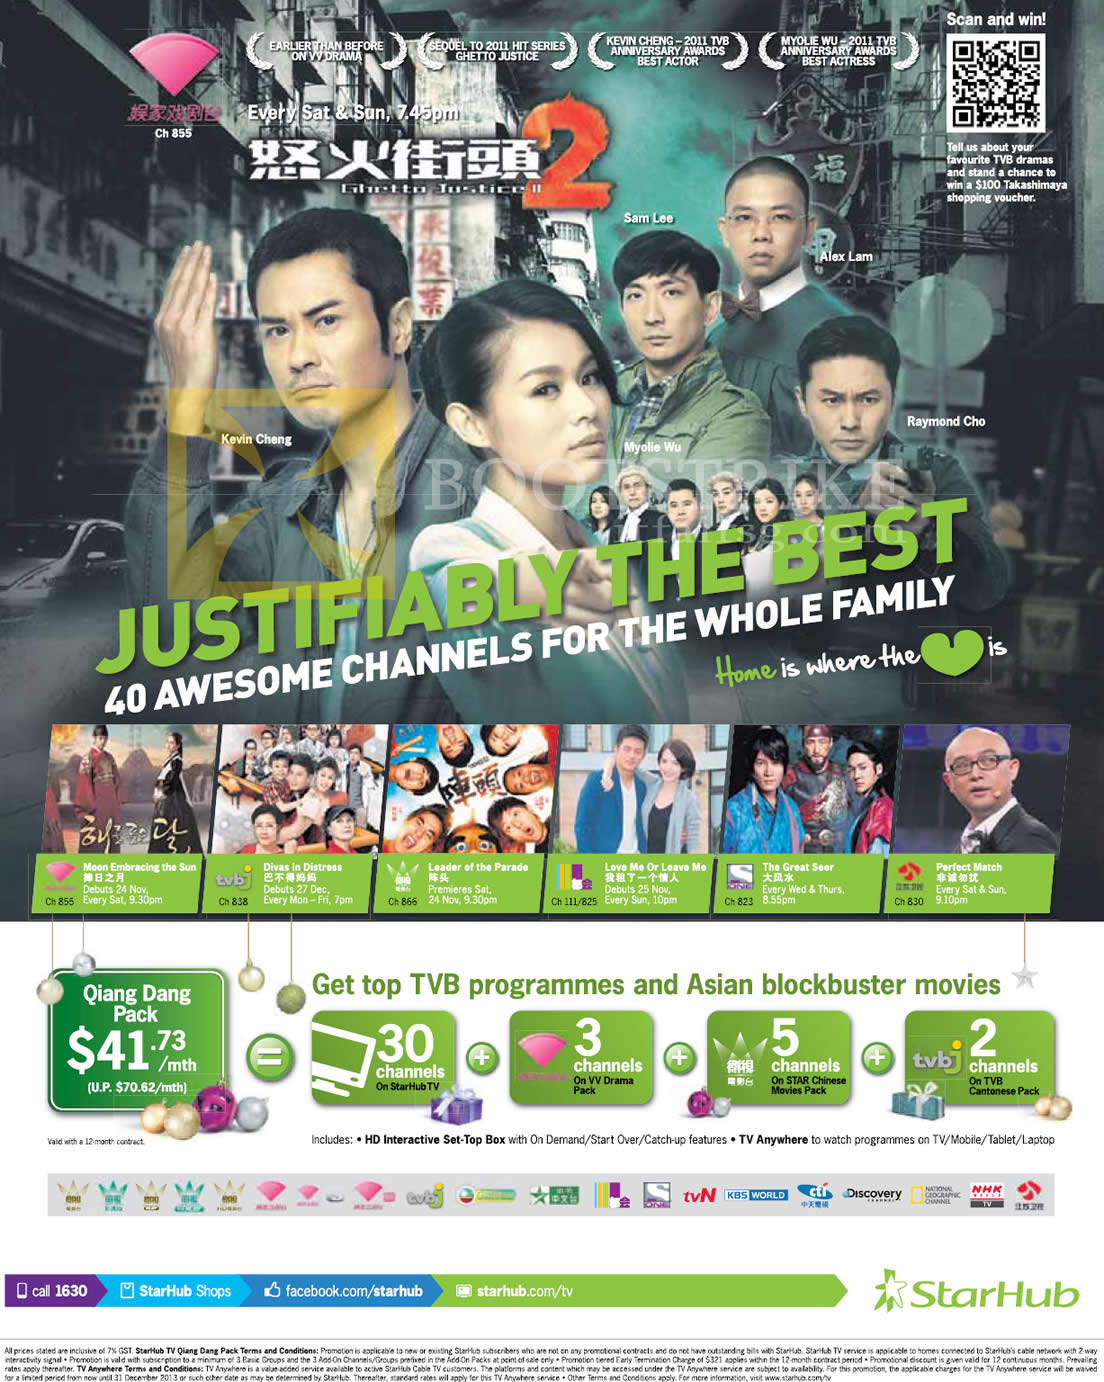 Starhub Cable TV Qiang Dang Pack, 30 Channels, VV Drama Pack, Star